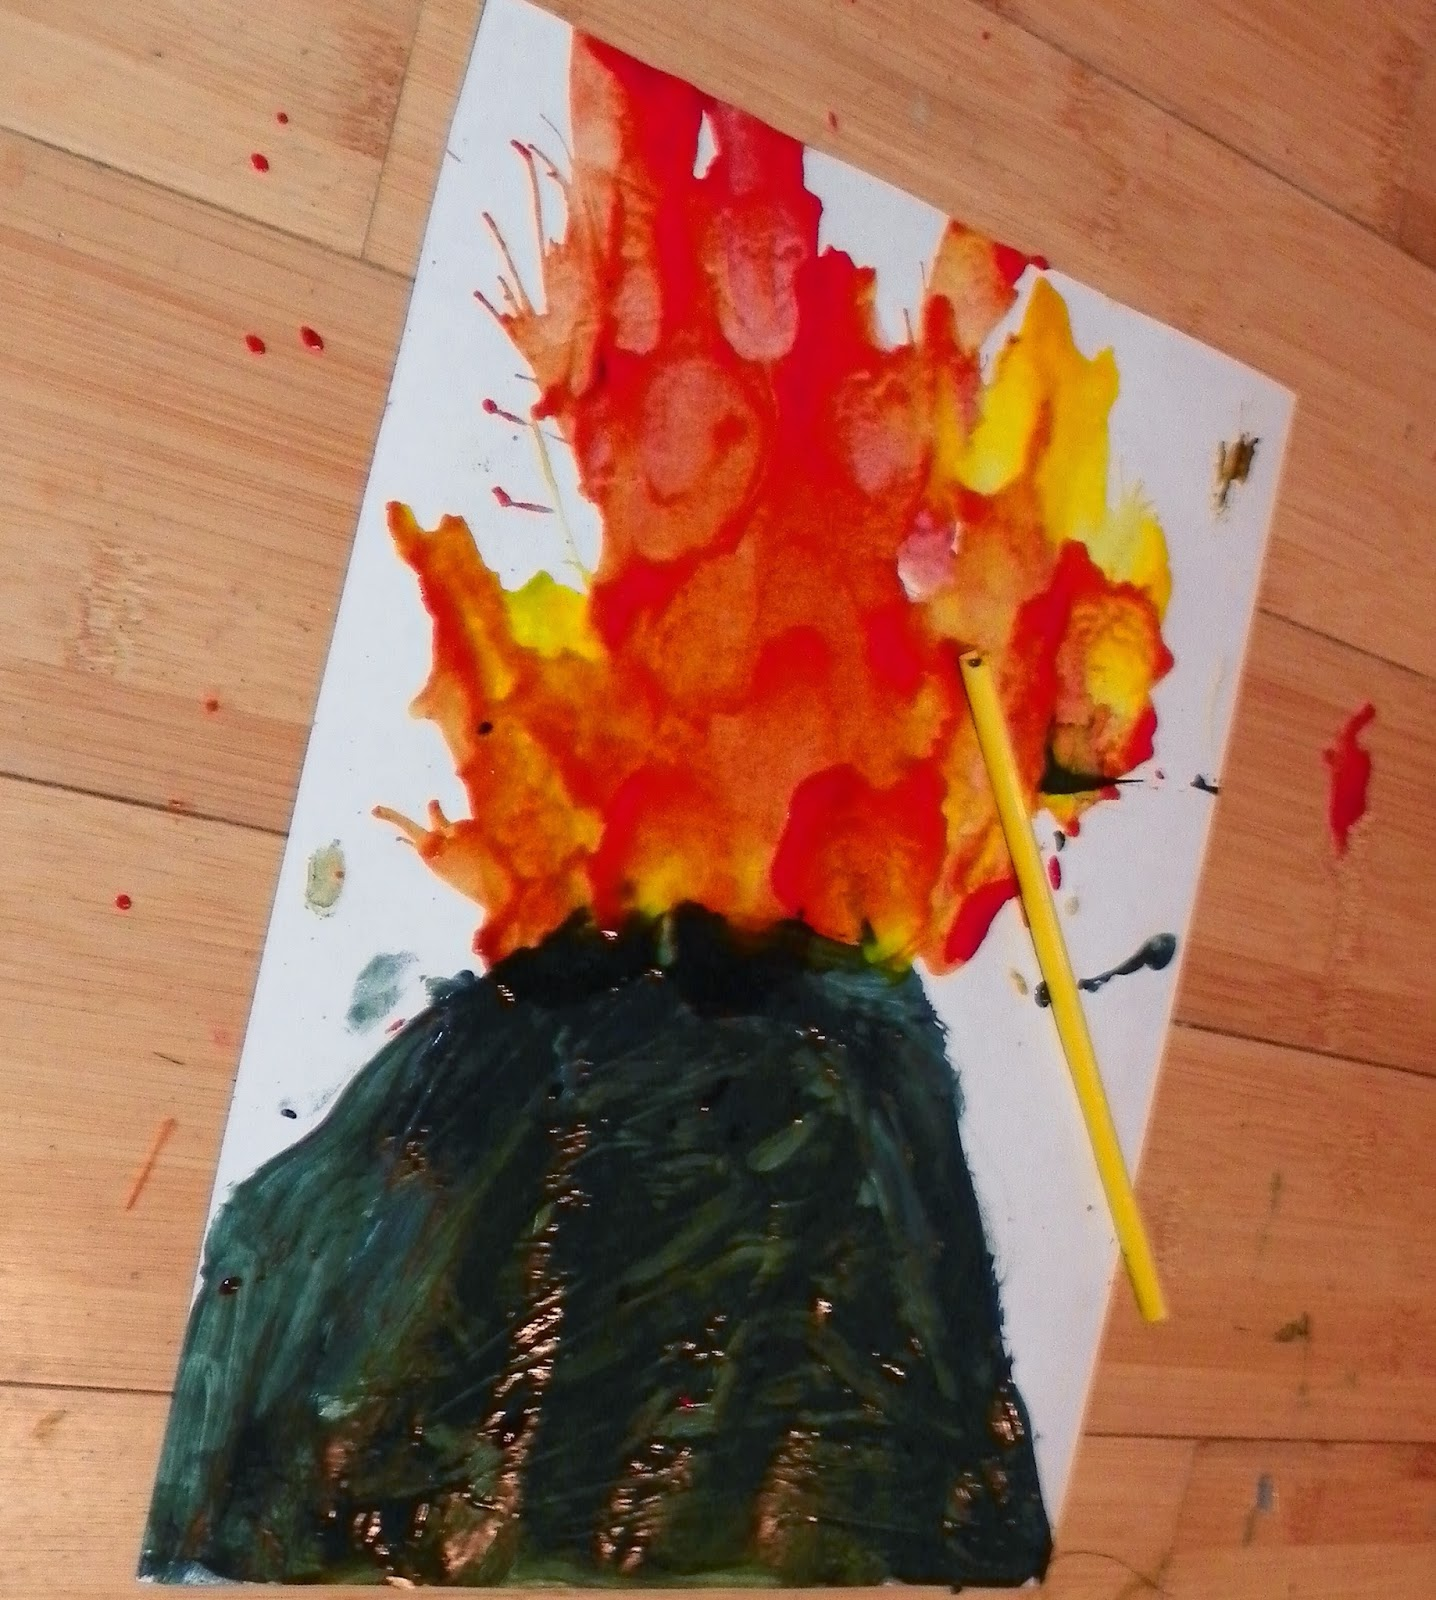 Volcano Orange Paint >> The Little Sewing Shop: Volcanoes and tectonics lapbook, unit study and playdate!